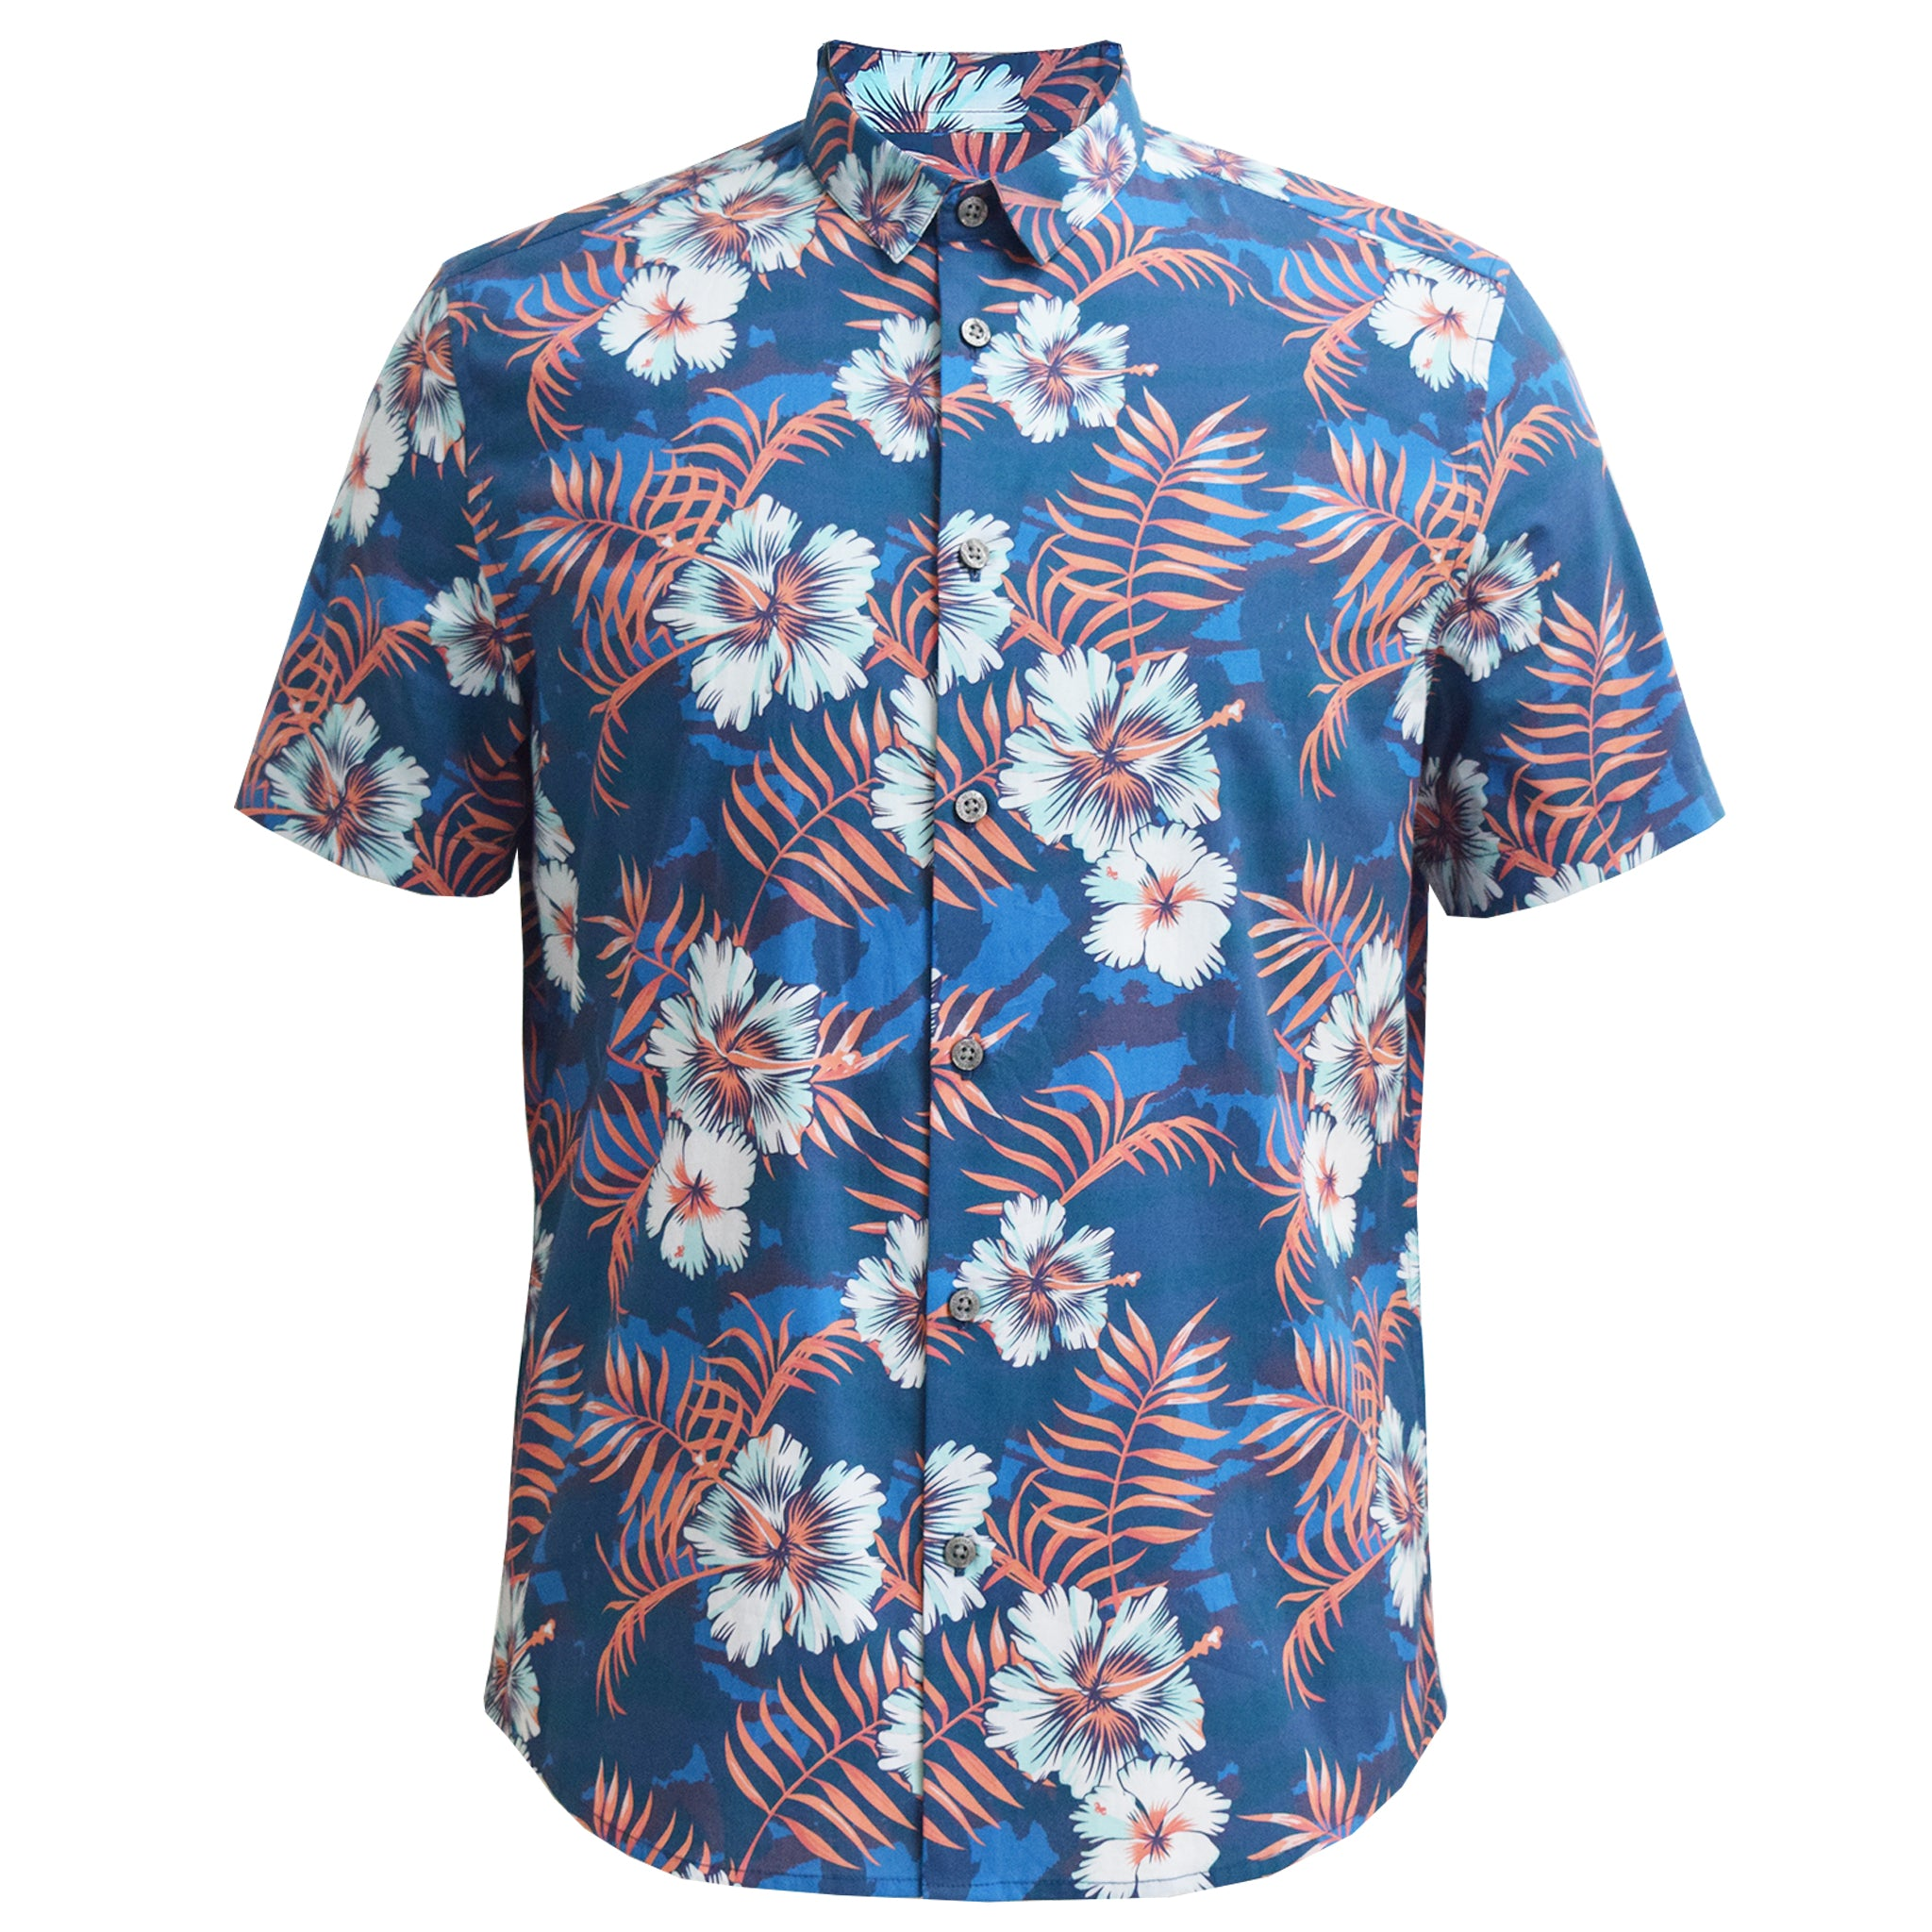 Crown Floral Classic Collar Shirt